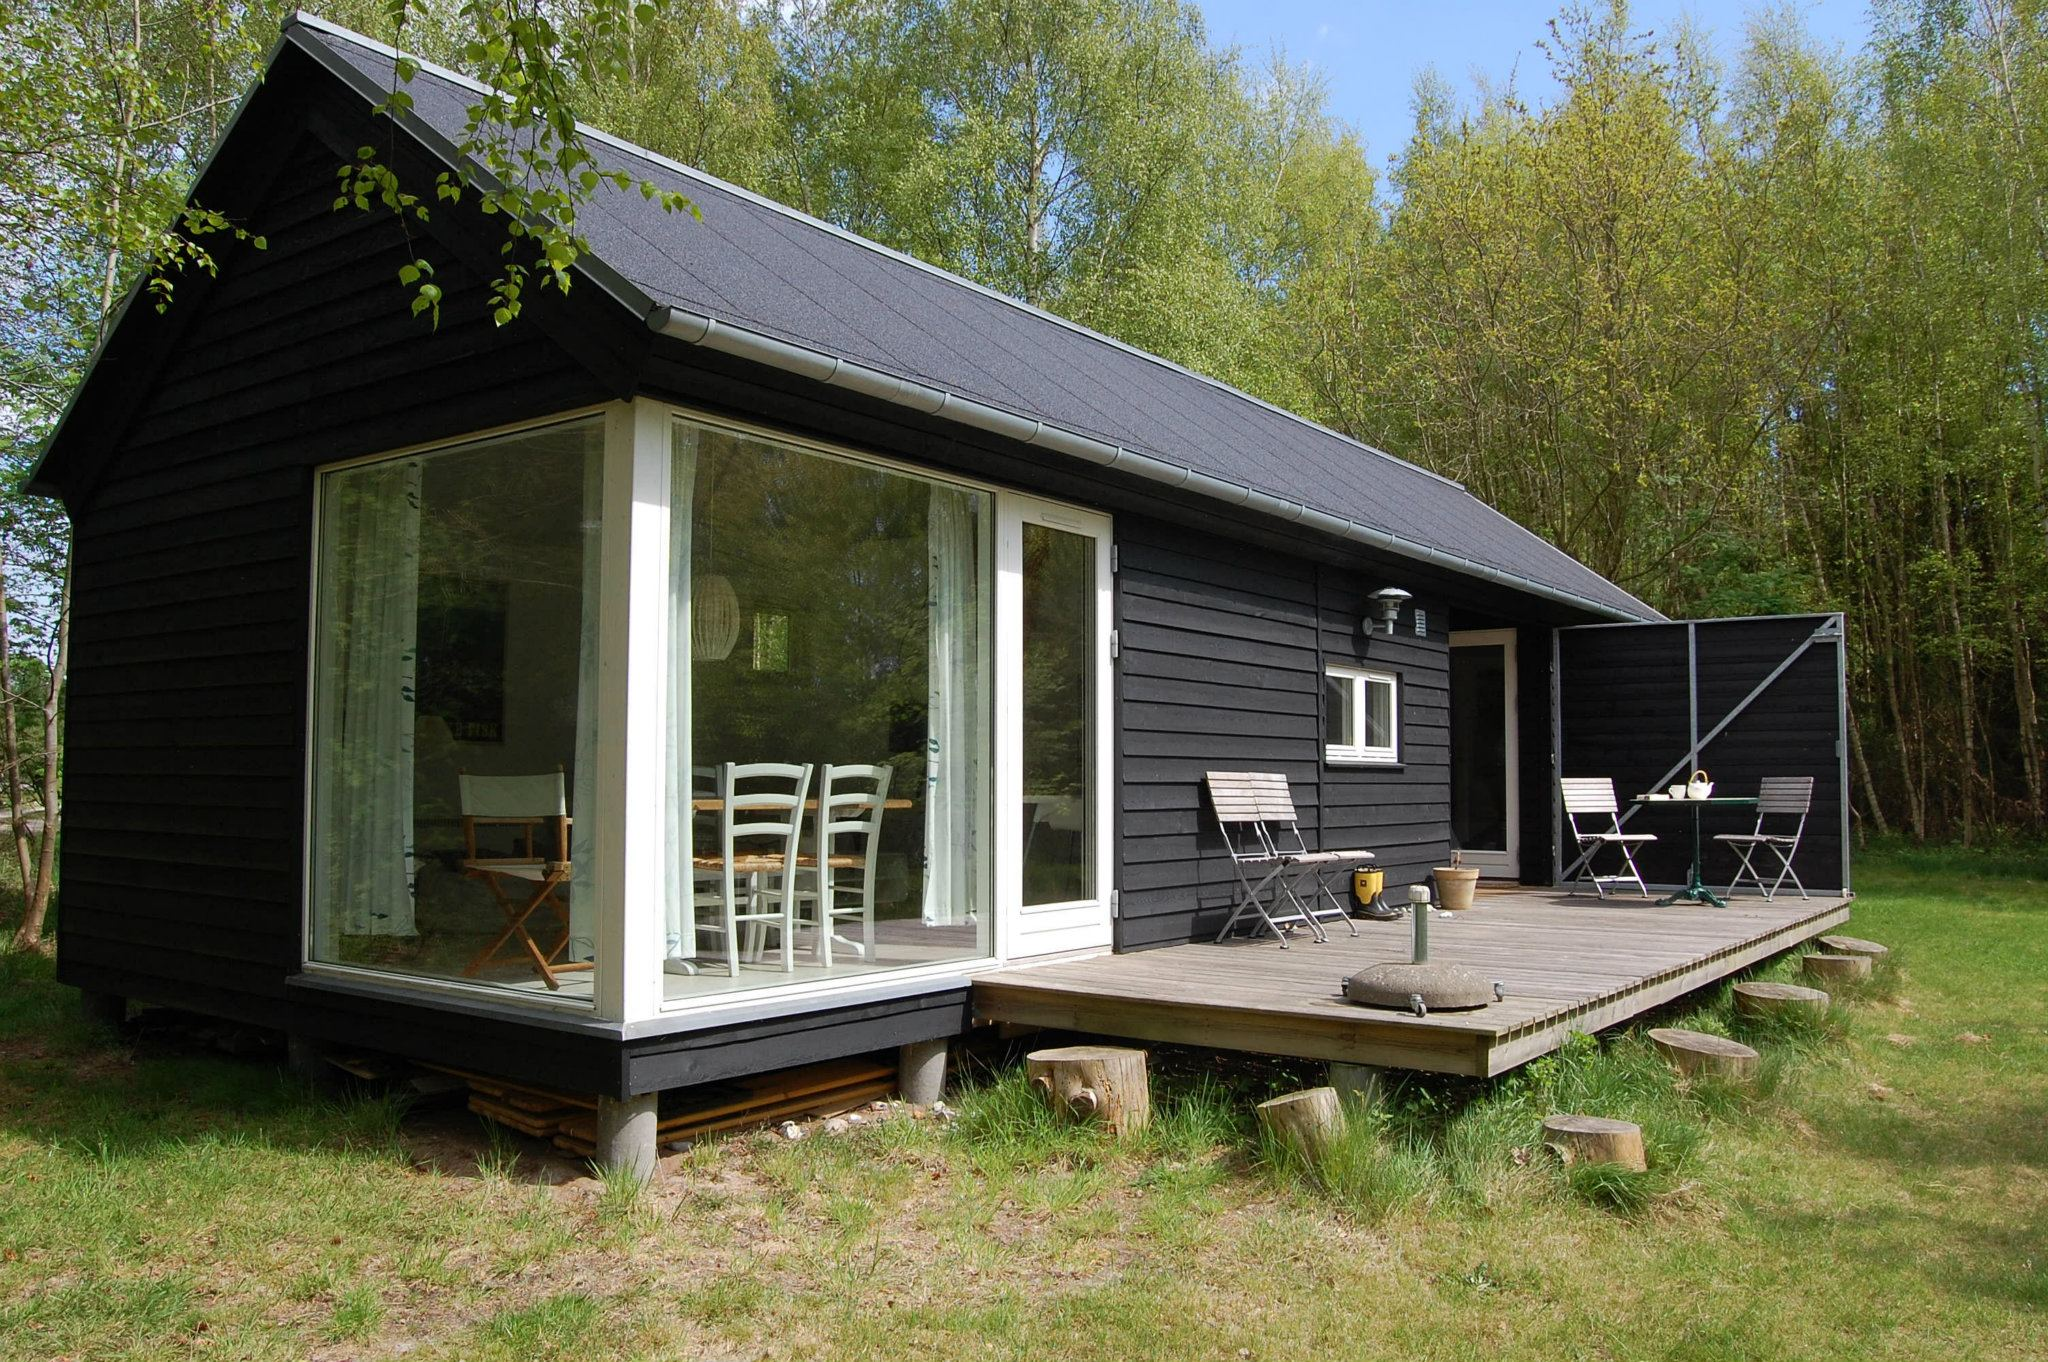 Best The Lngehuset A Modular Vacation House From Denmark With Bedrooms In  Sq Ft With Minecraft